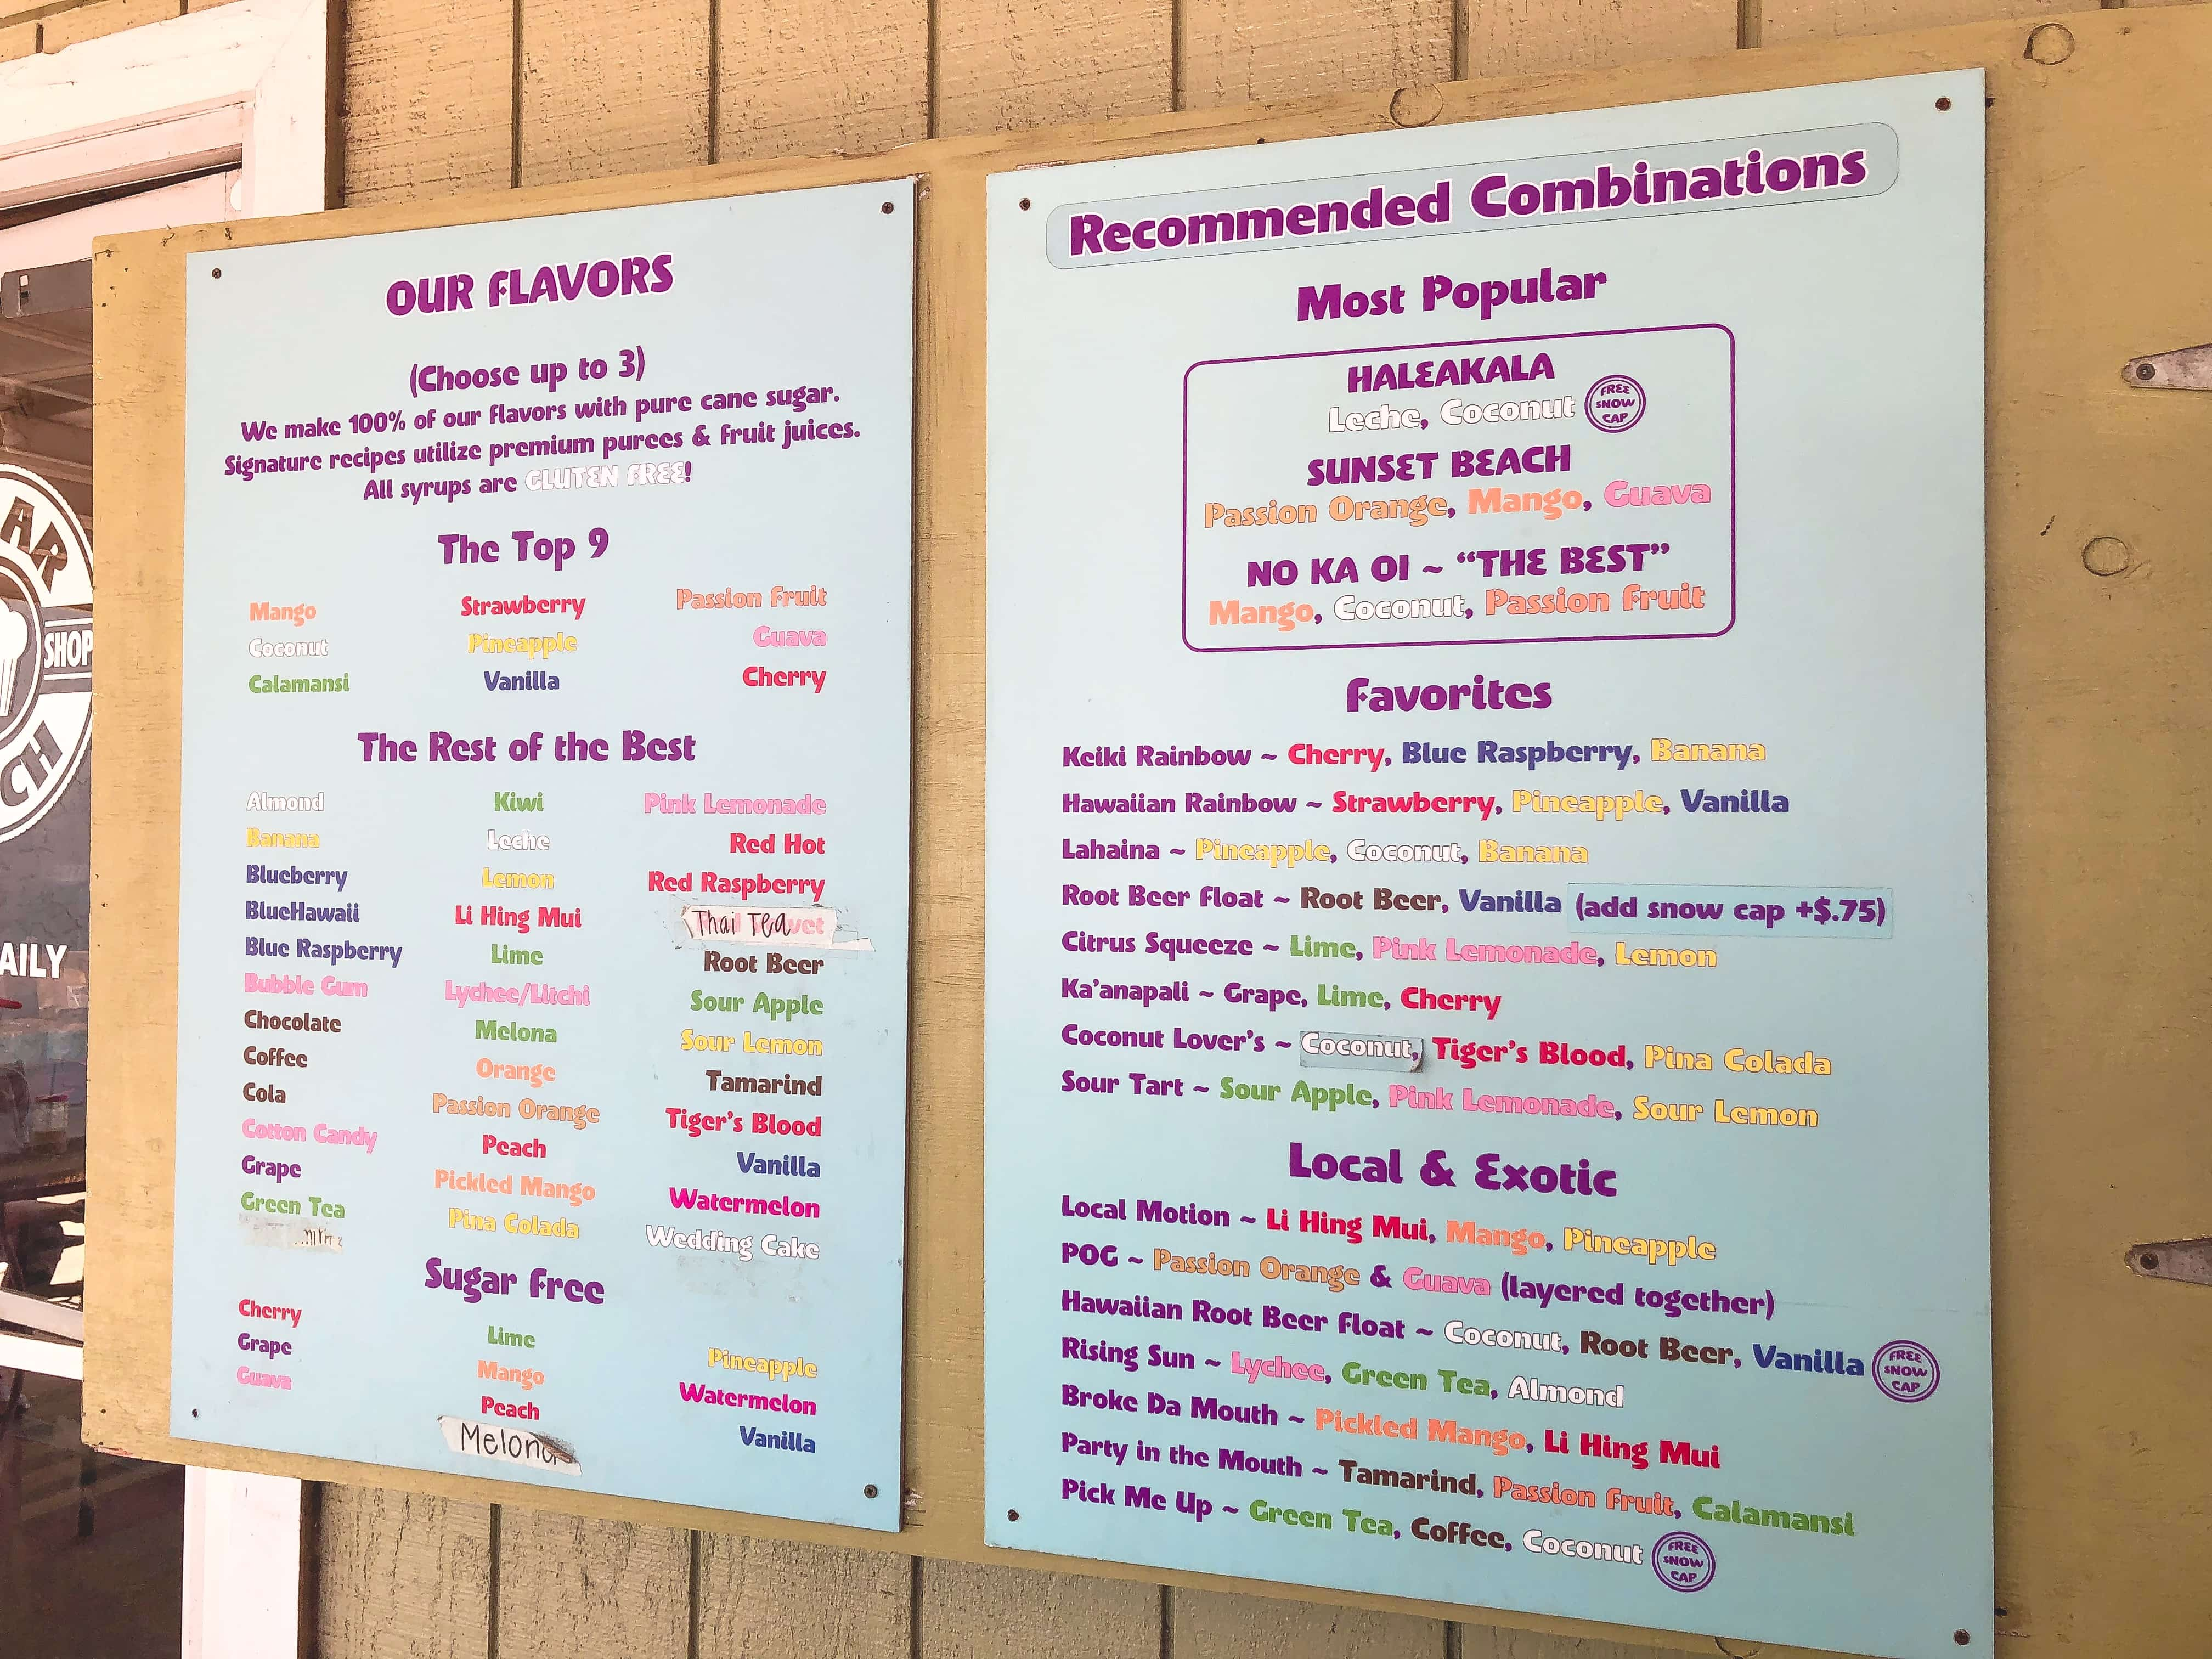 Ululani's shave ice flavors